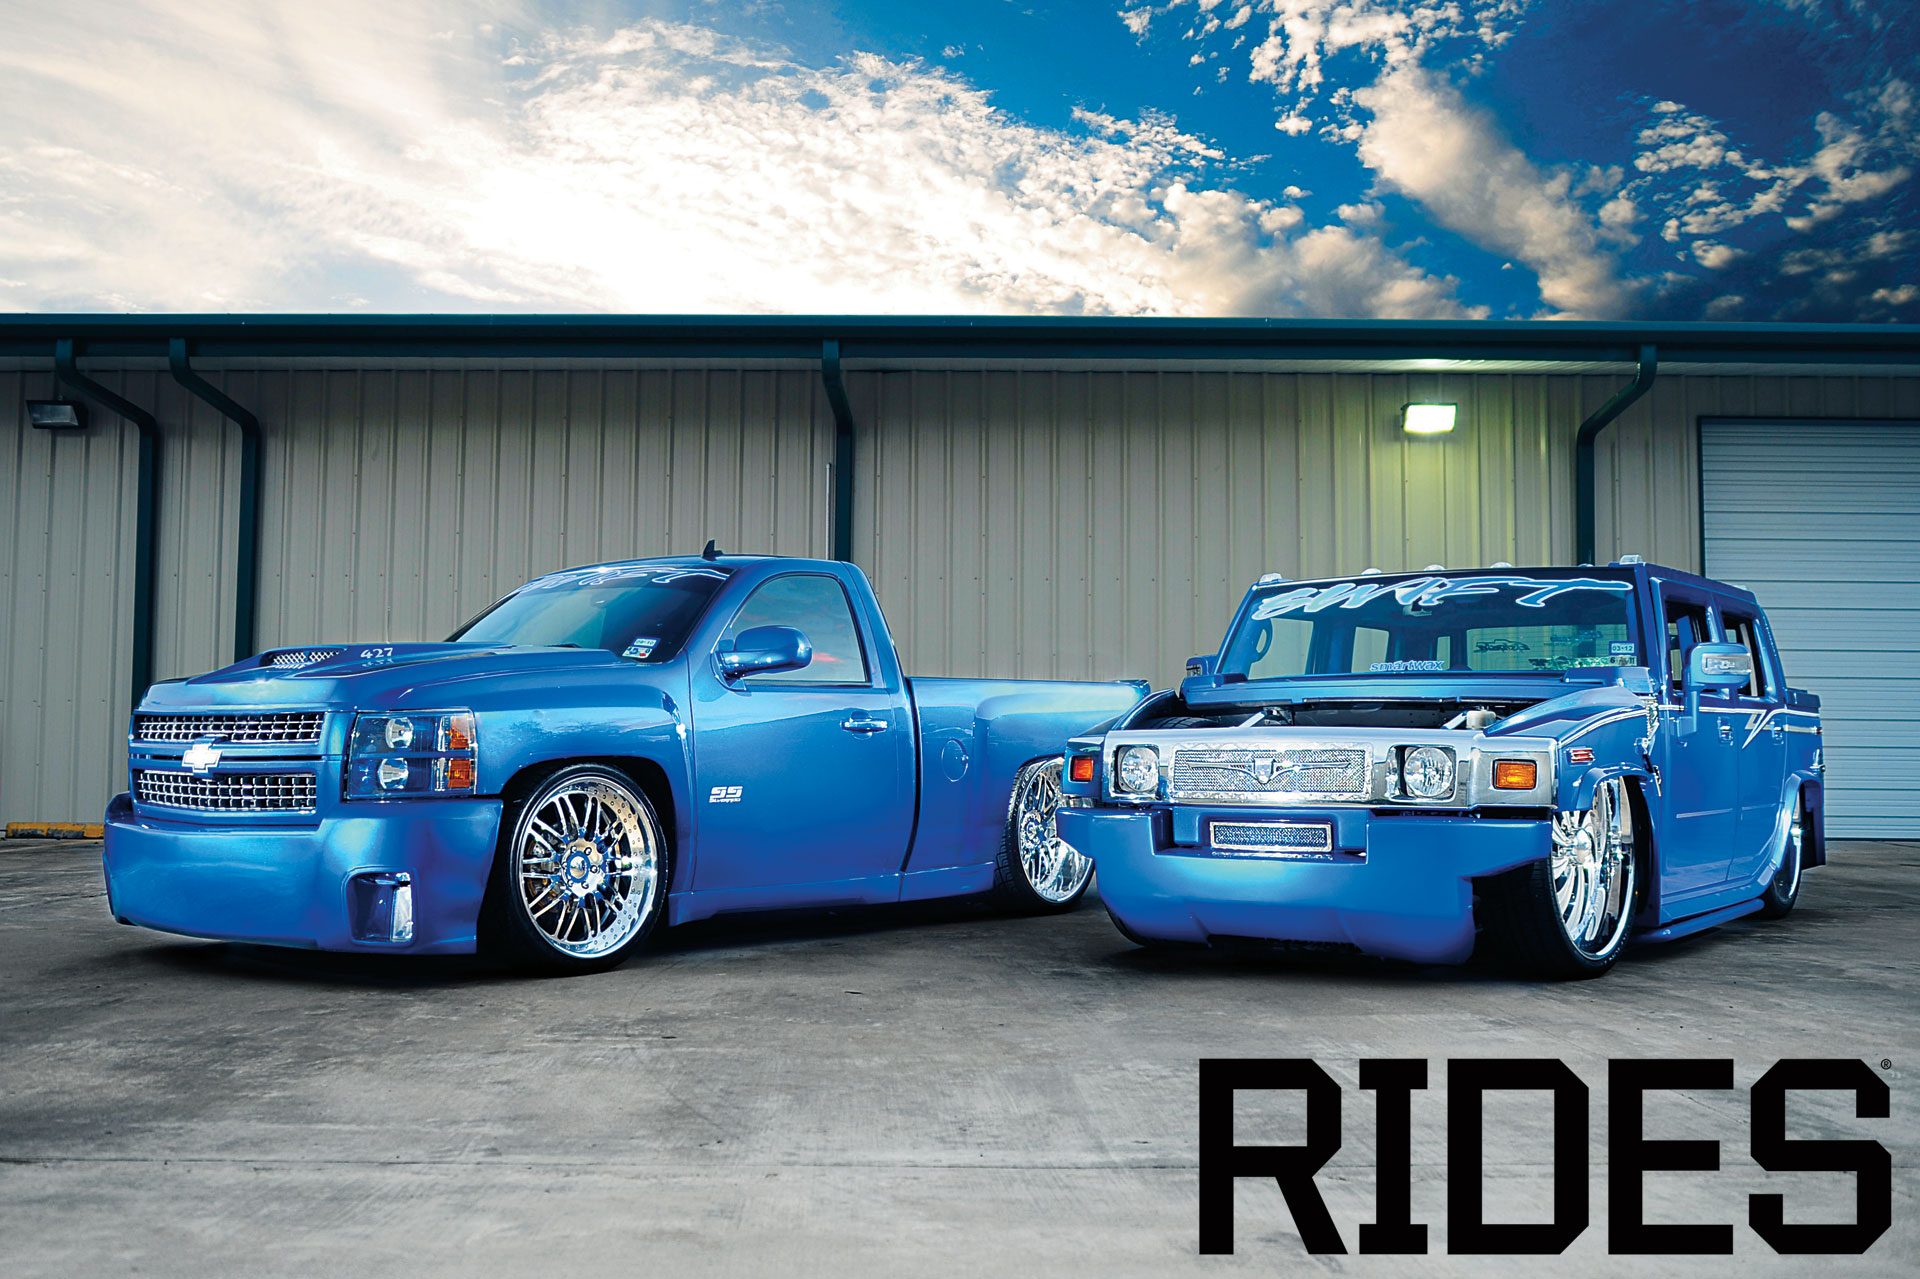 rides cars swift-texas-wallpaper chevrolet silverado hummer